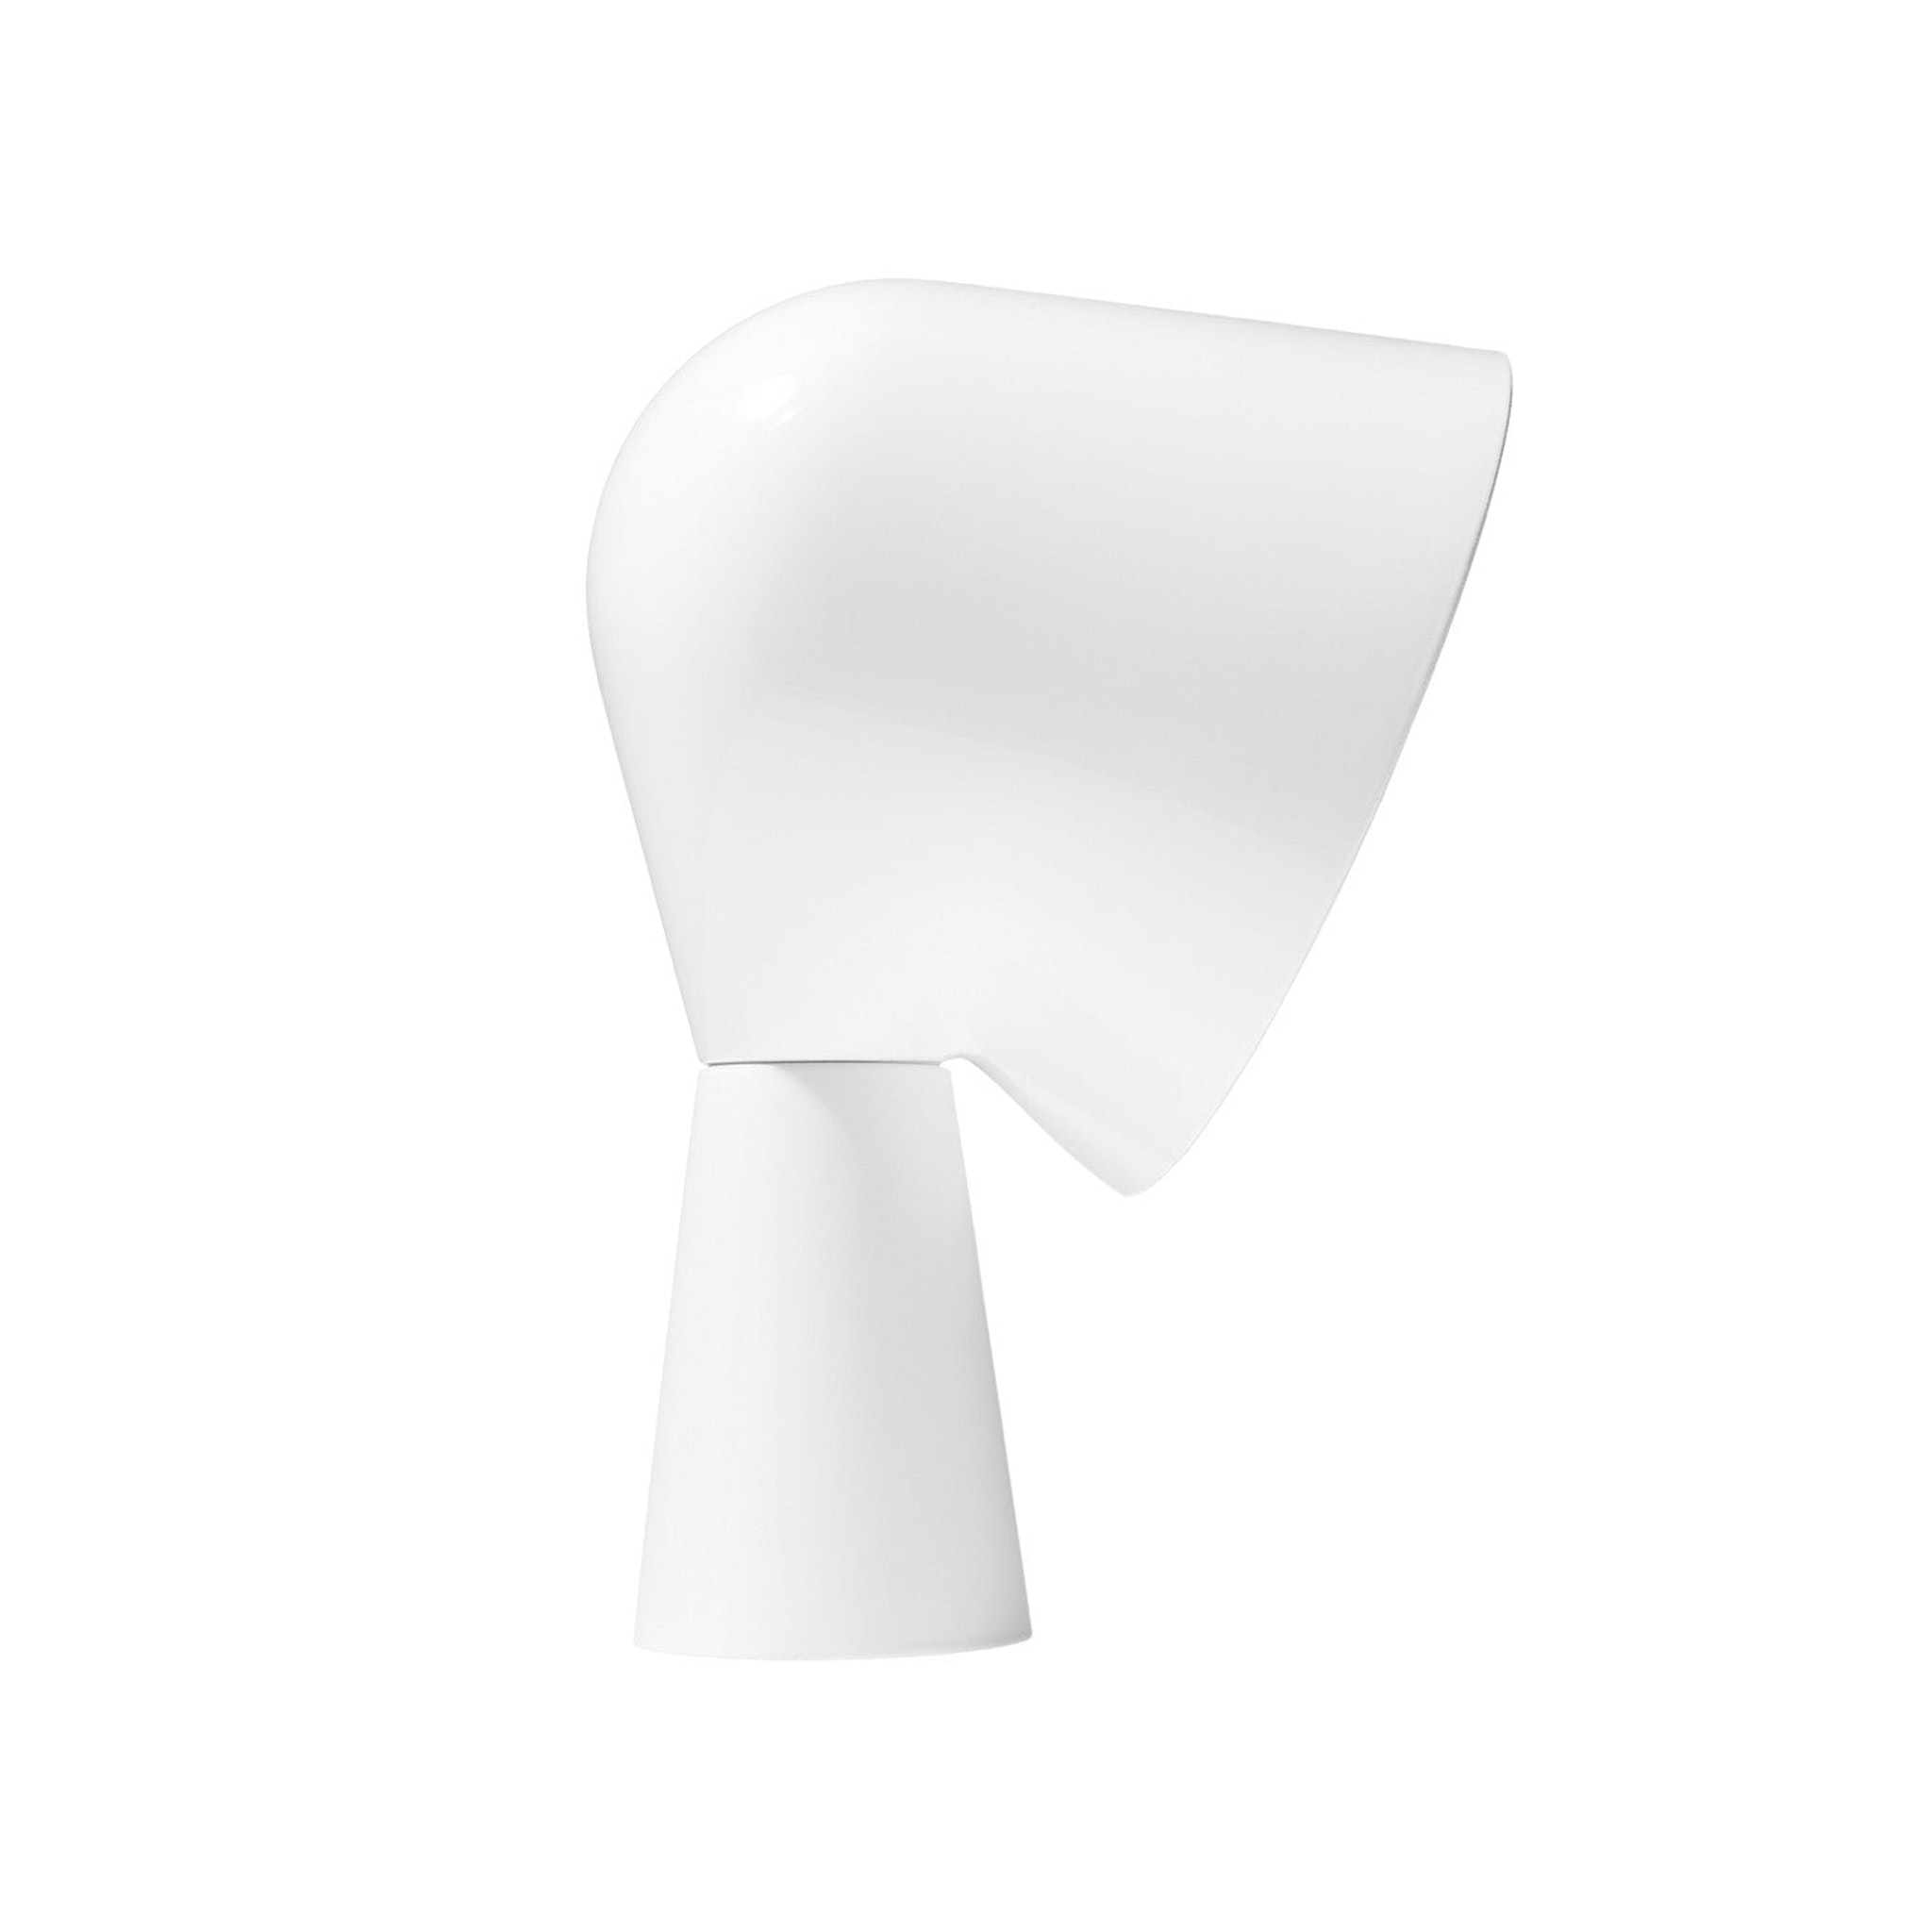 Binic Table Lamp by Ionna Vautrin for Foscarini